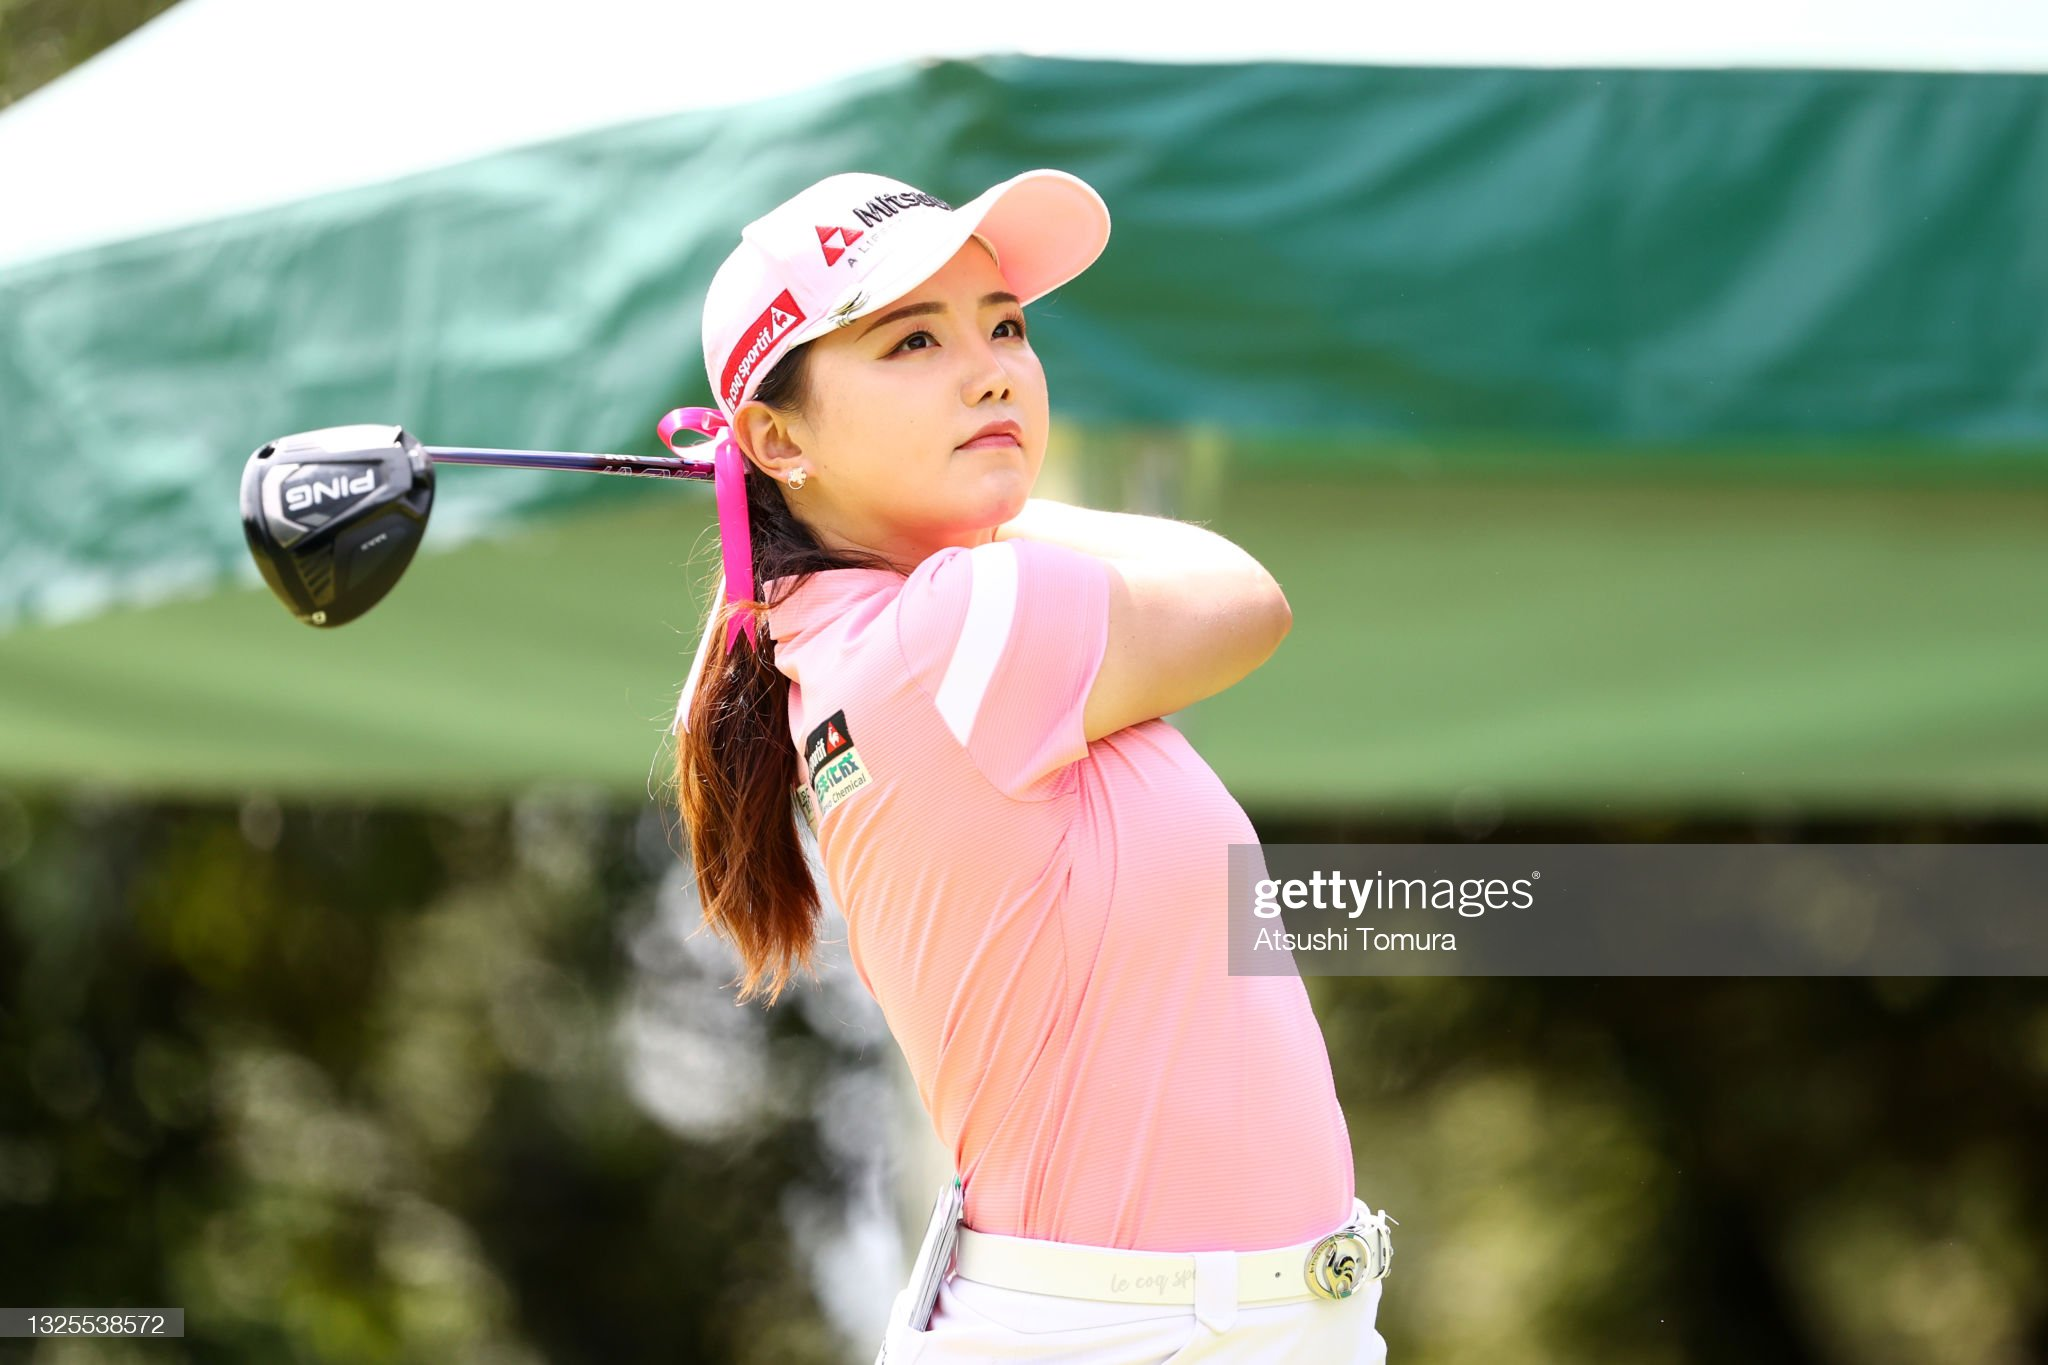 https://media.gettyimages.com/photos/yuting-seki-of-china-hits-her-tee-shot-on-the-1st-hole-during-the-picture-id1325538572?s=2048x2048